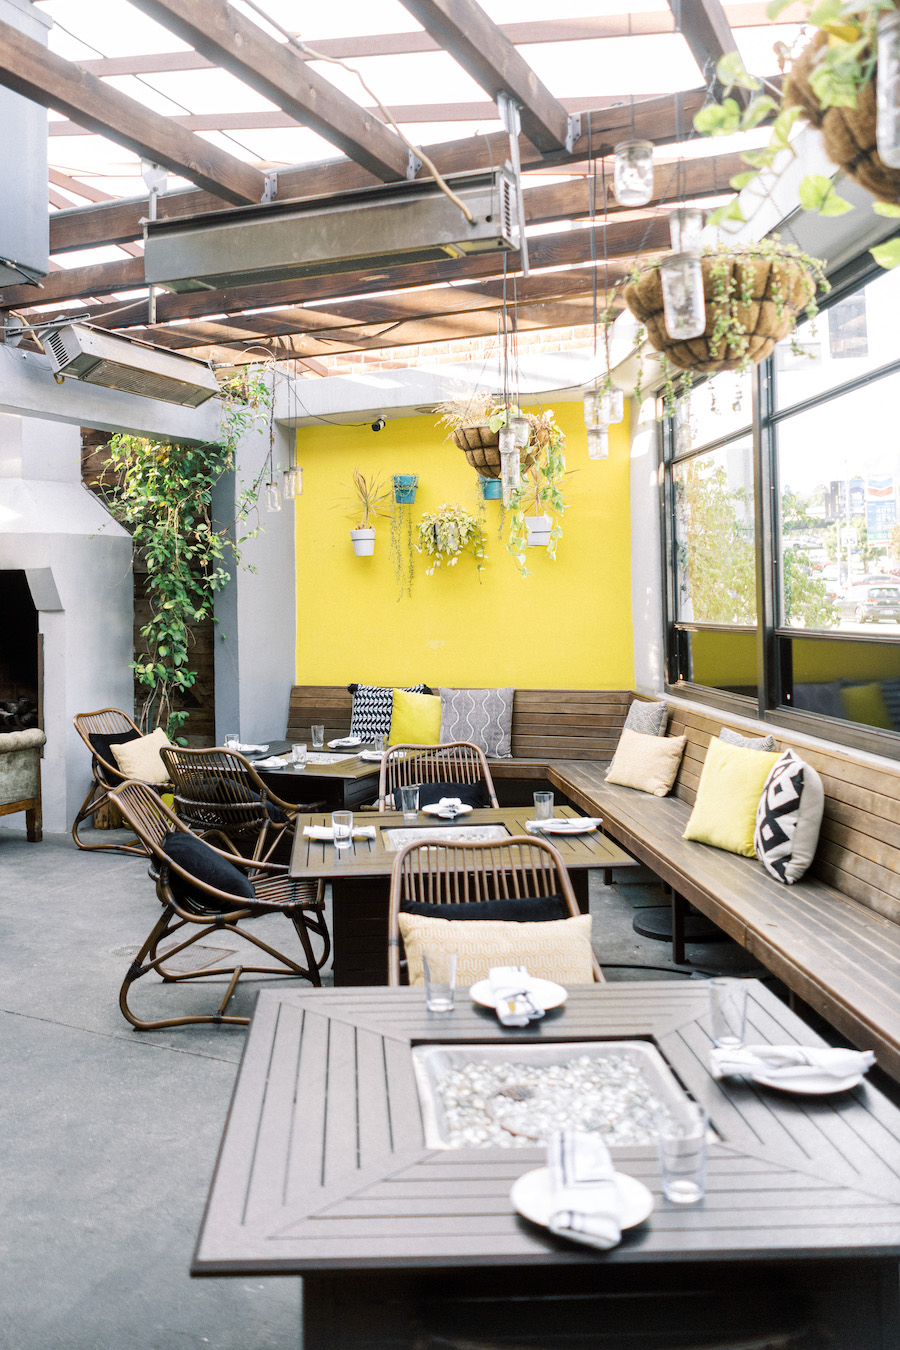 outdoor greehouse patio area in restaurant with yellow wall